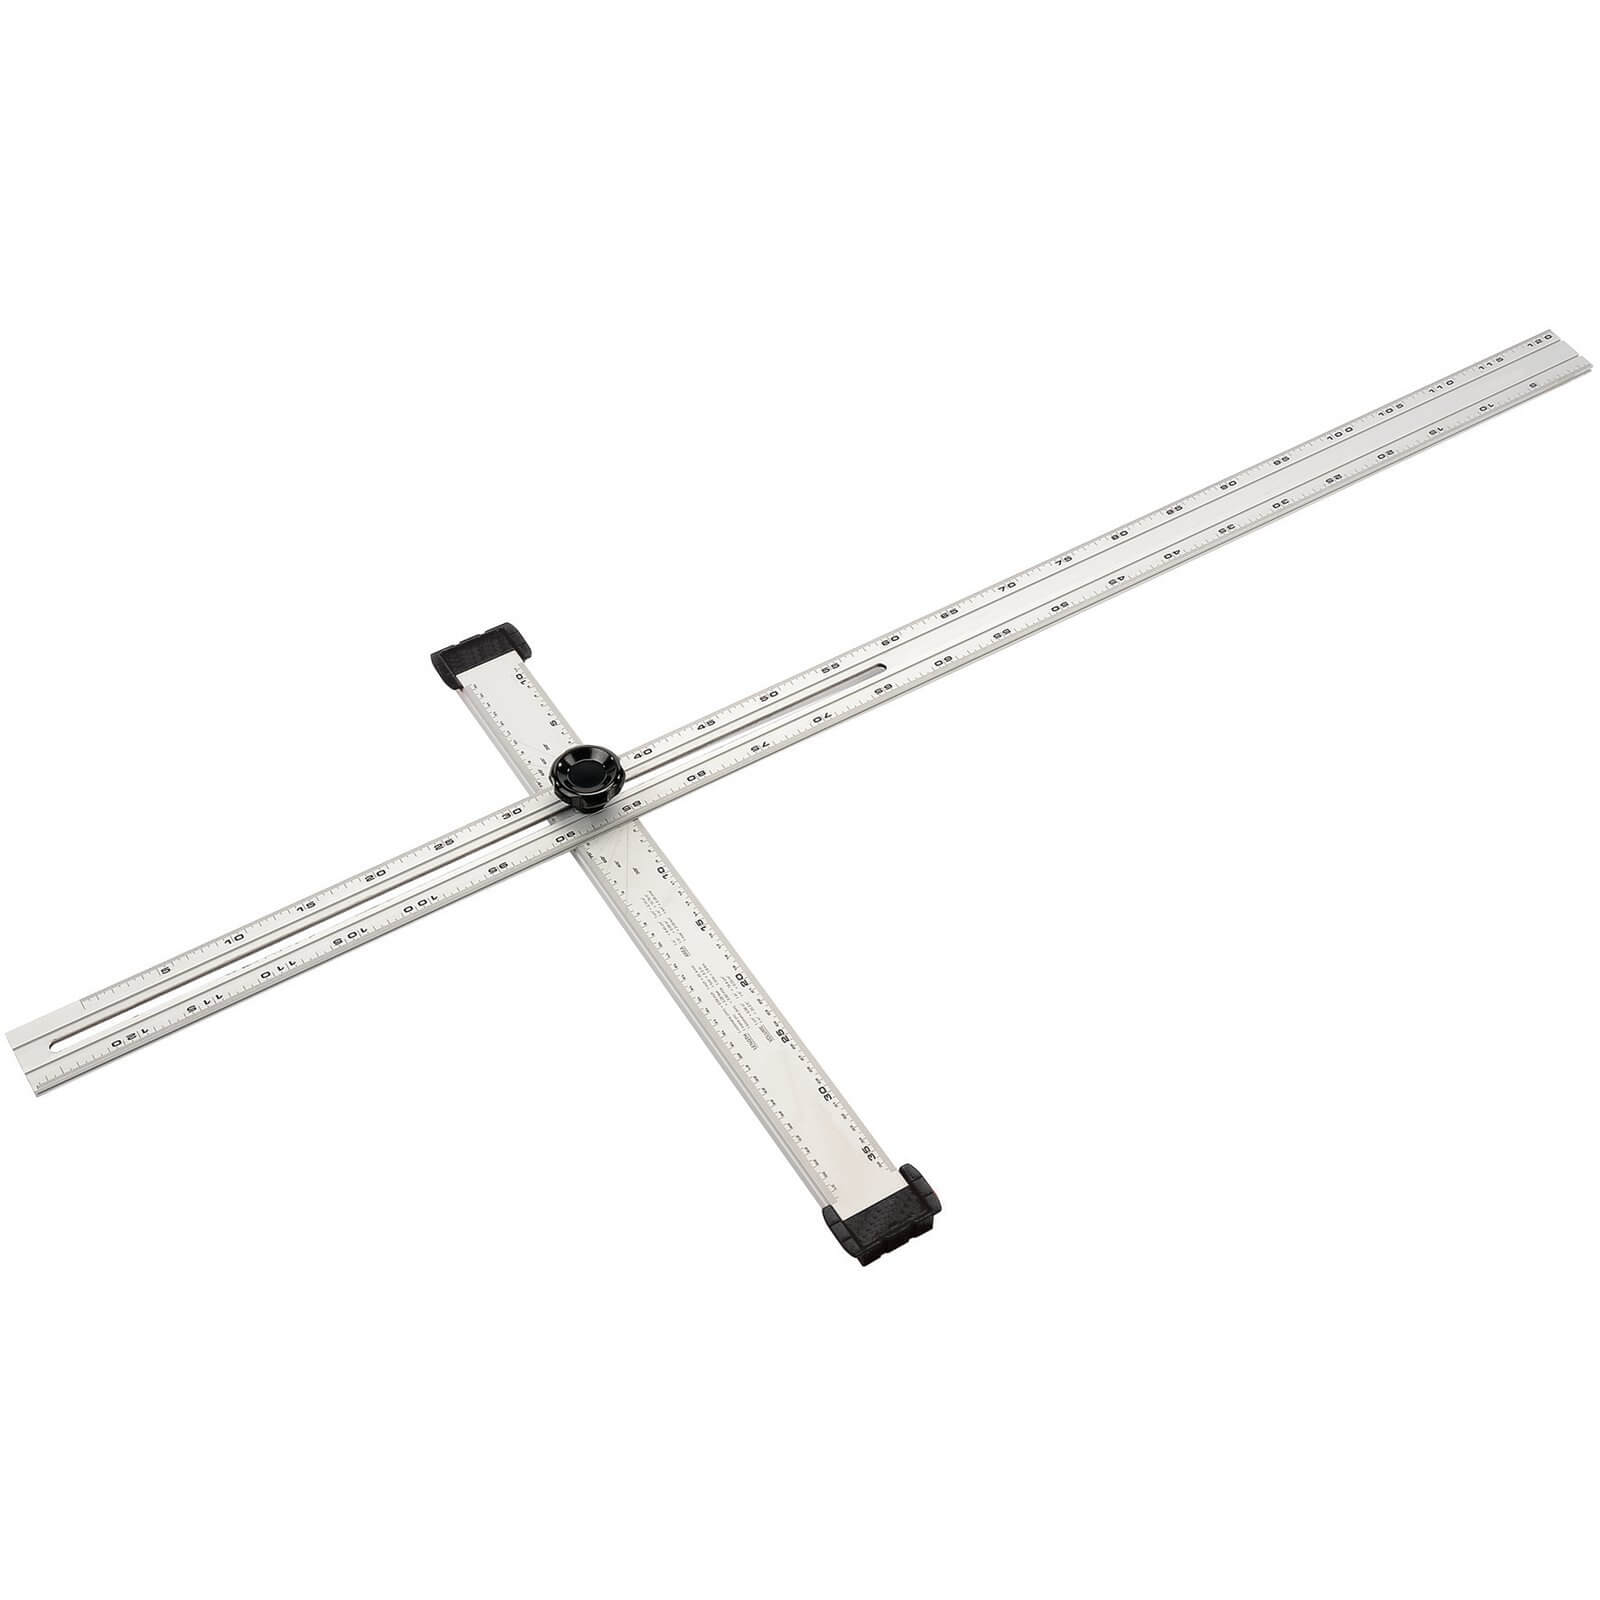 Image of Draper Expert Adjustable Drywall T Square 1200mm